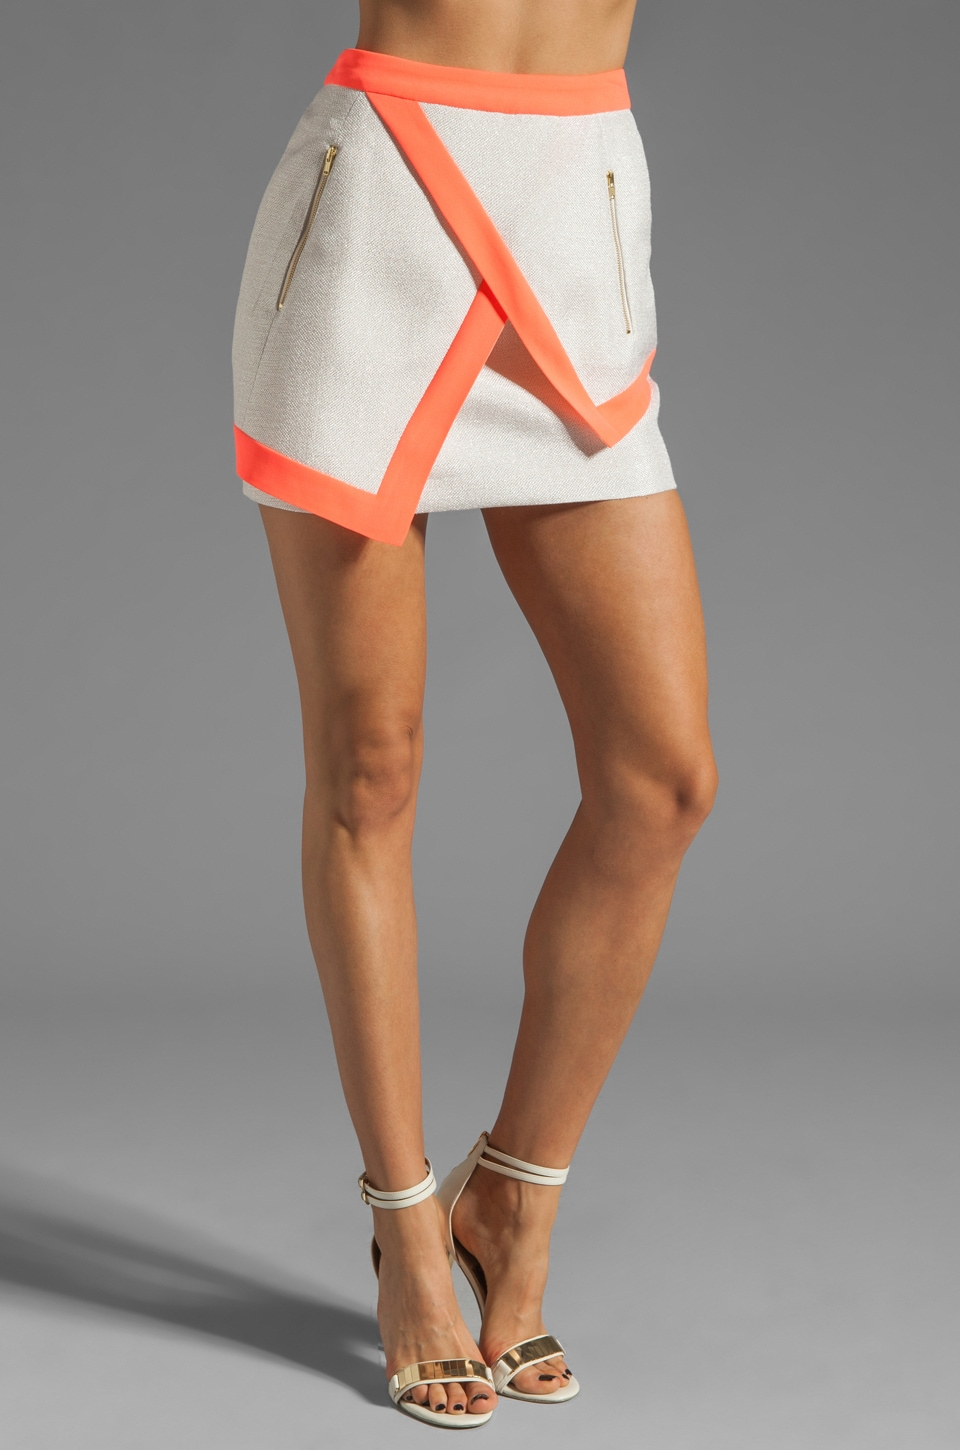 Finders Keepers I've Been Loving Skirt in Soft Gold/Sherbert